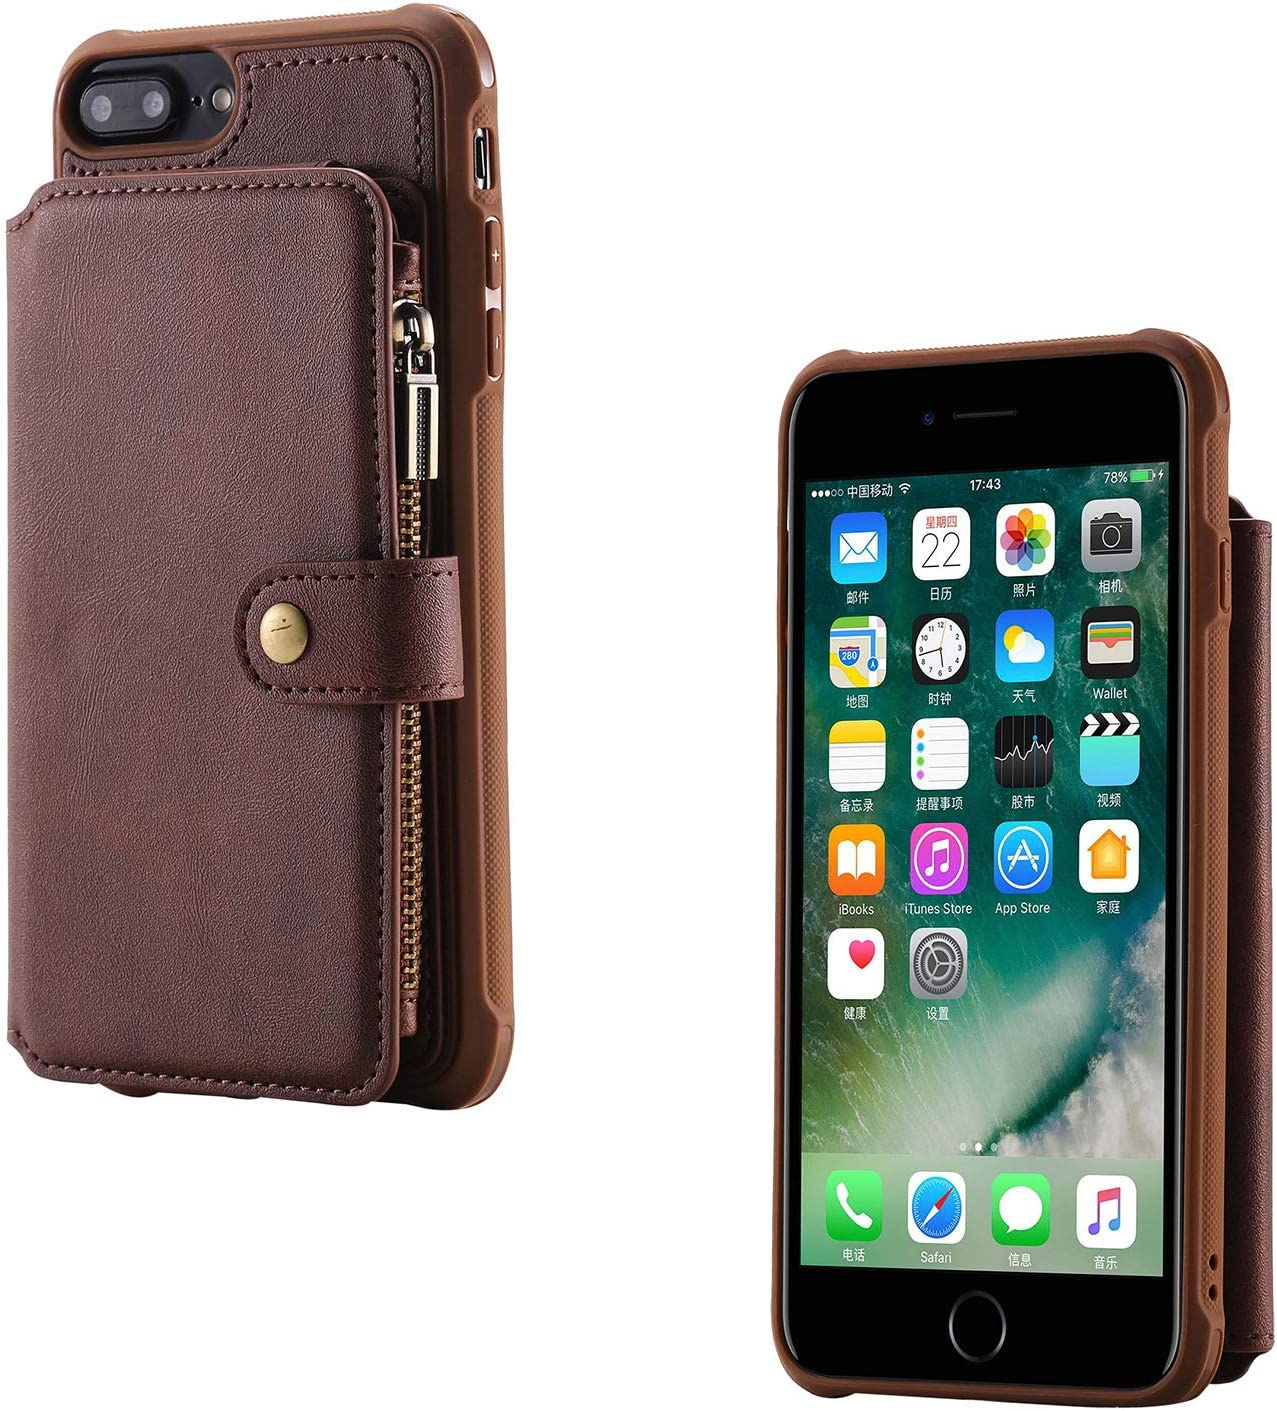 Techcircle iPhone 8 Plus Wallet Case, iPhone 7 Plus Wallet Case Premium Leather Flip Stand Cover Case with Card Holder [Magnets] Zipper Pocket Case for Apple iPhone 8 Plus/iPhone 7 Plus - Coffee